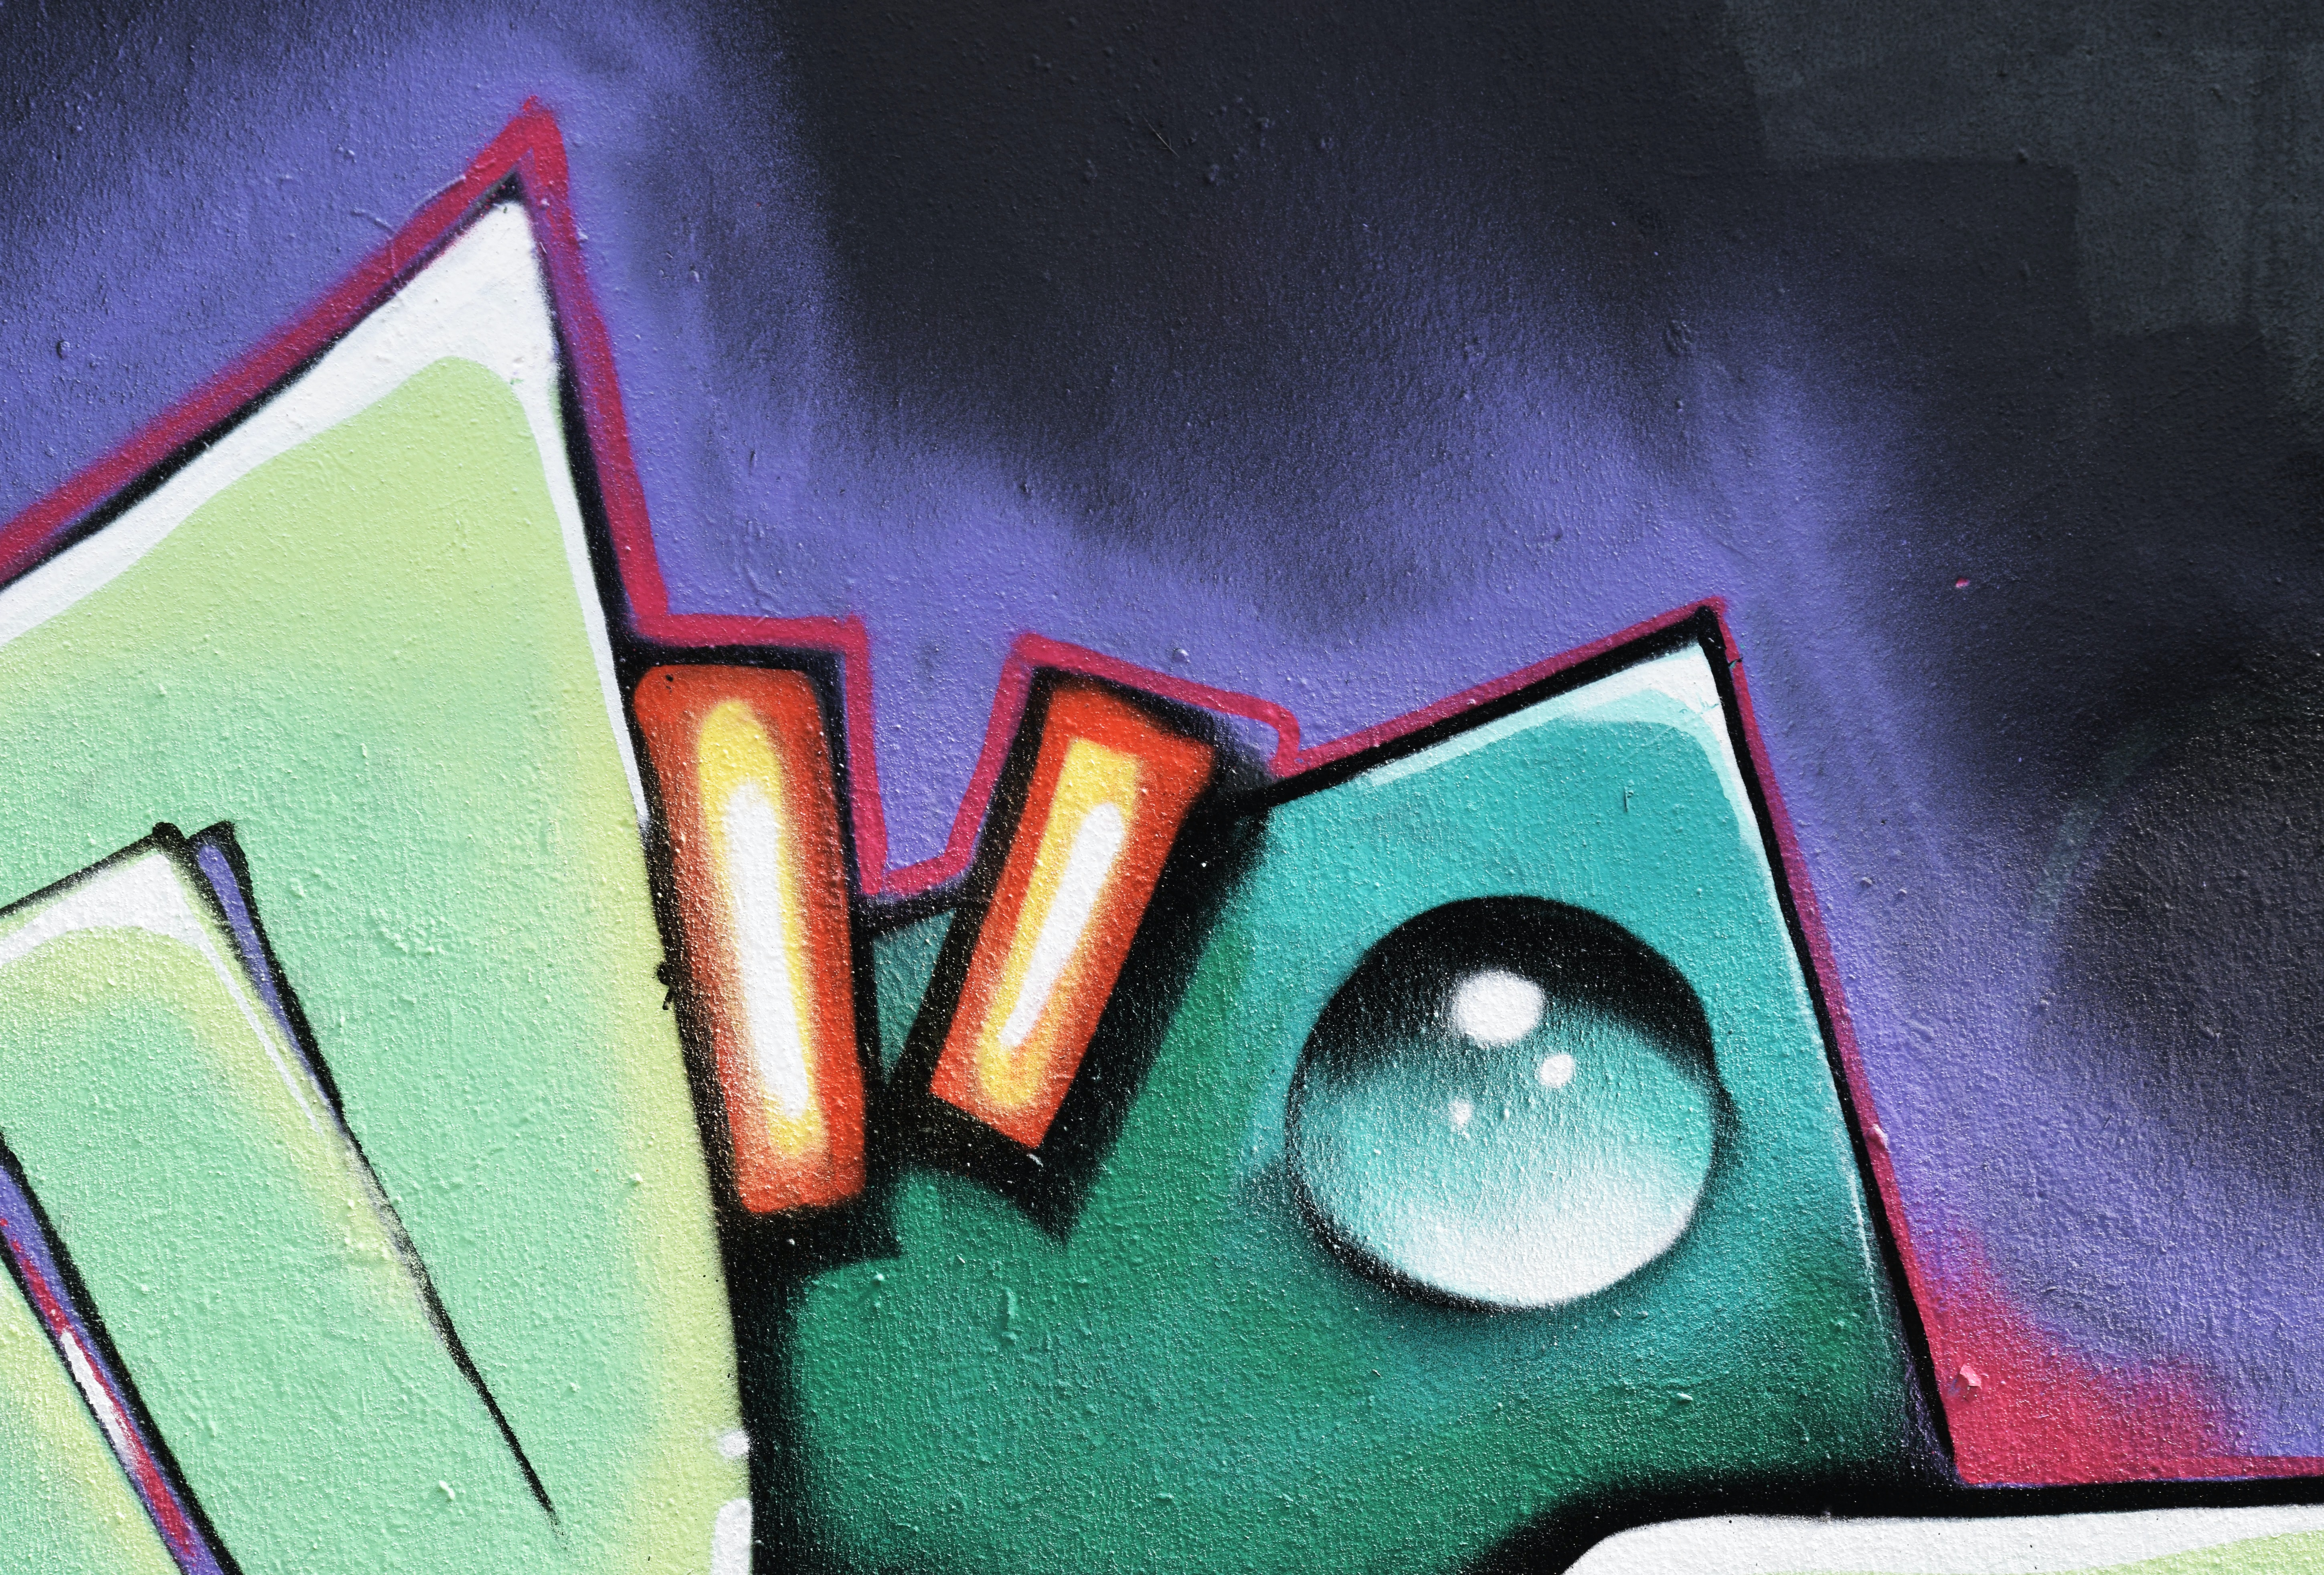 Close up of green, purple and red graffiti street art mural